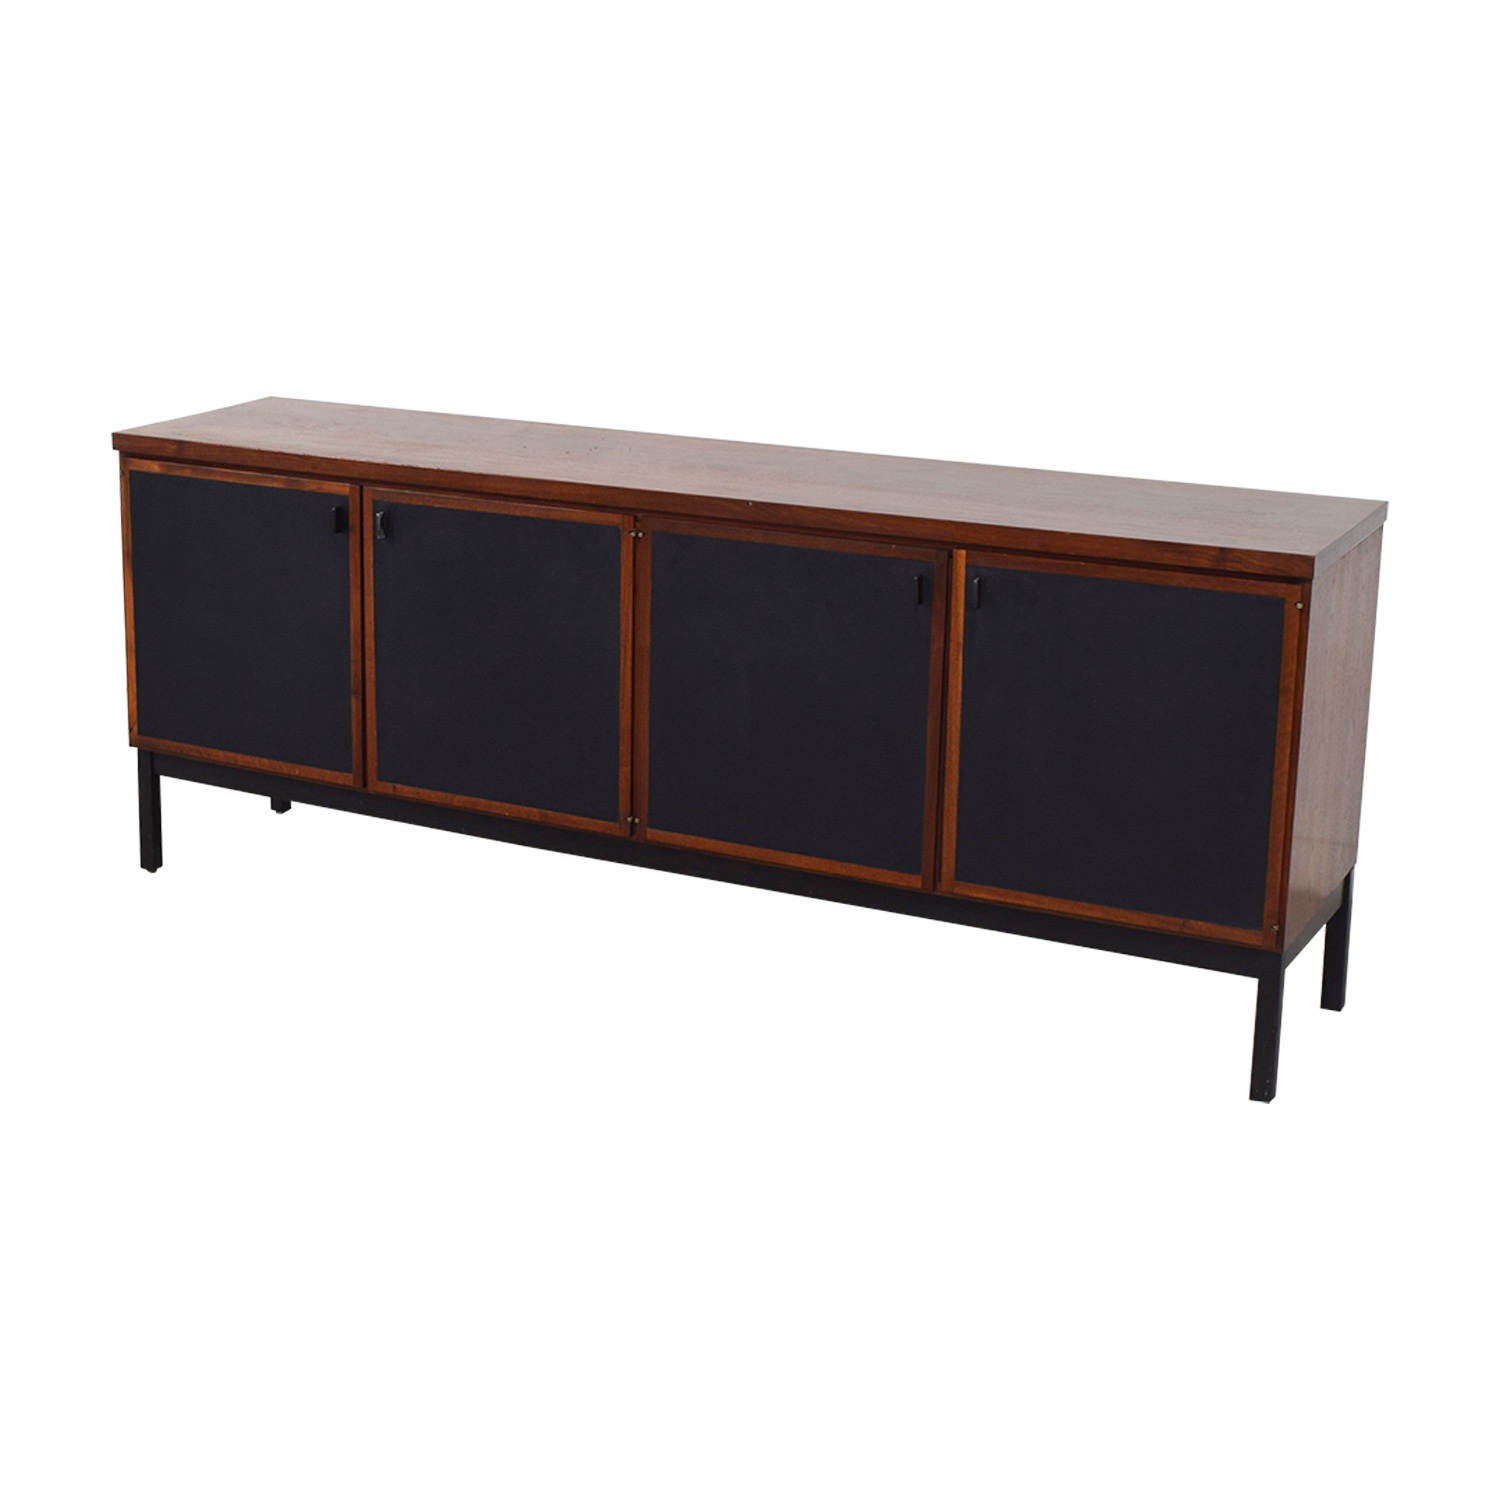 77 Off Mid Century Modern Cherry Wood And Black Leather